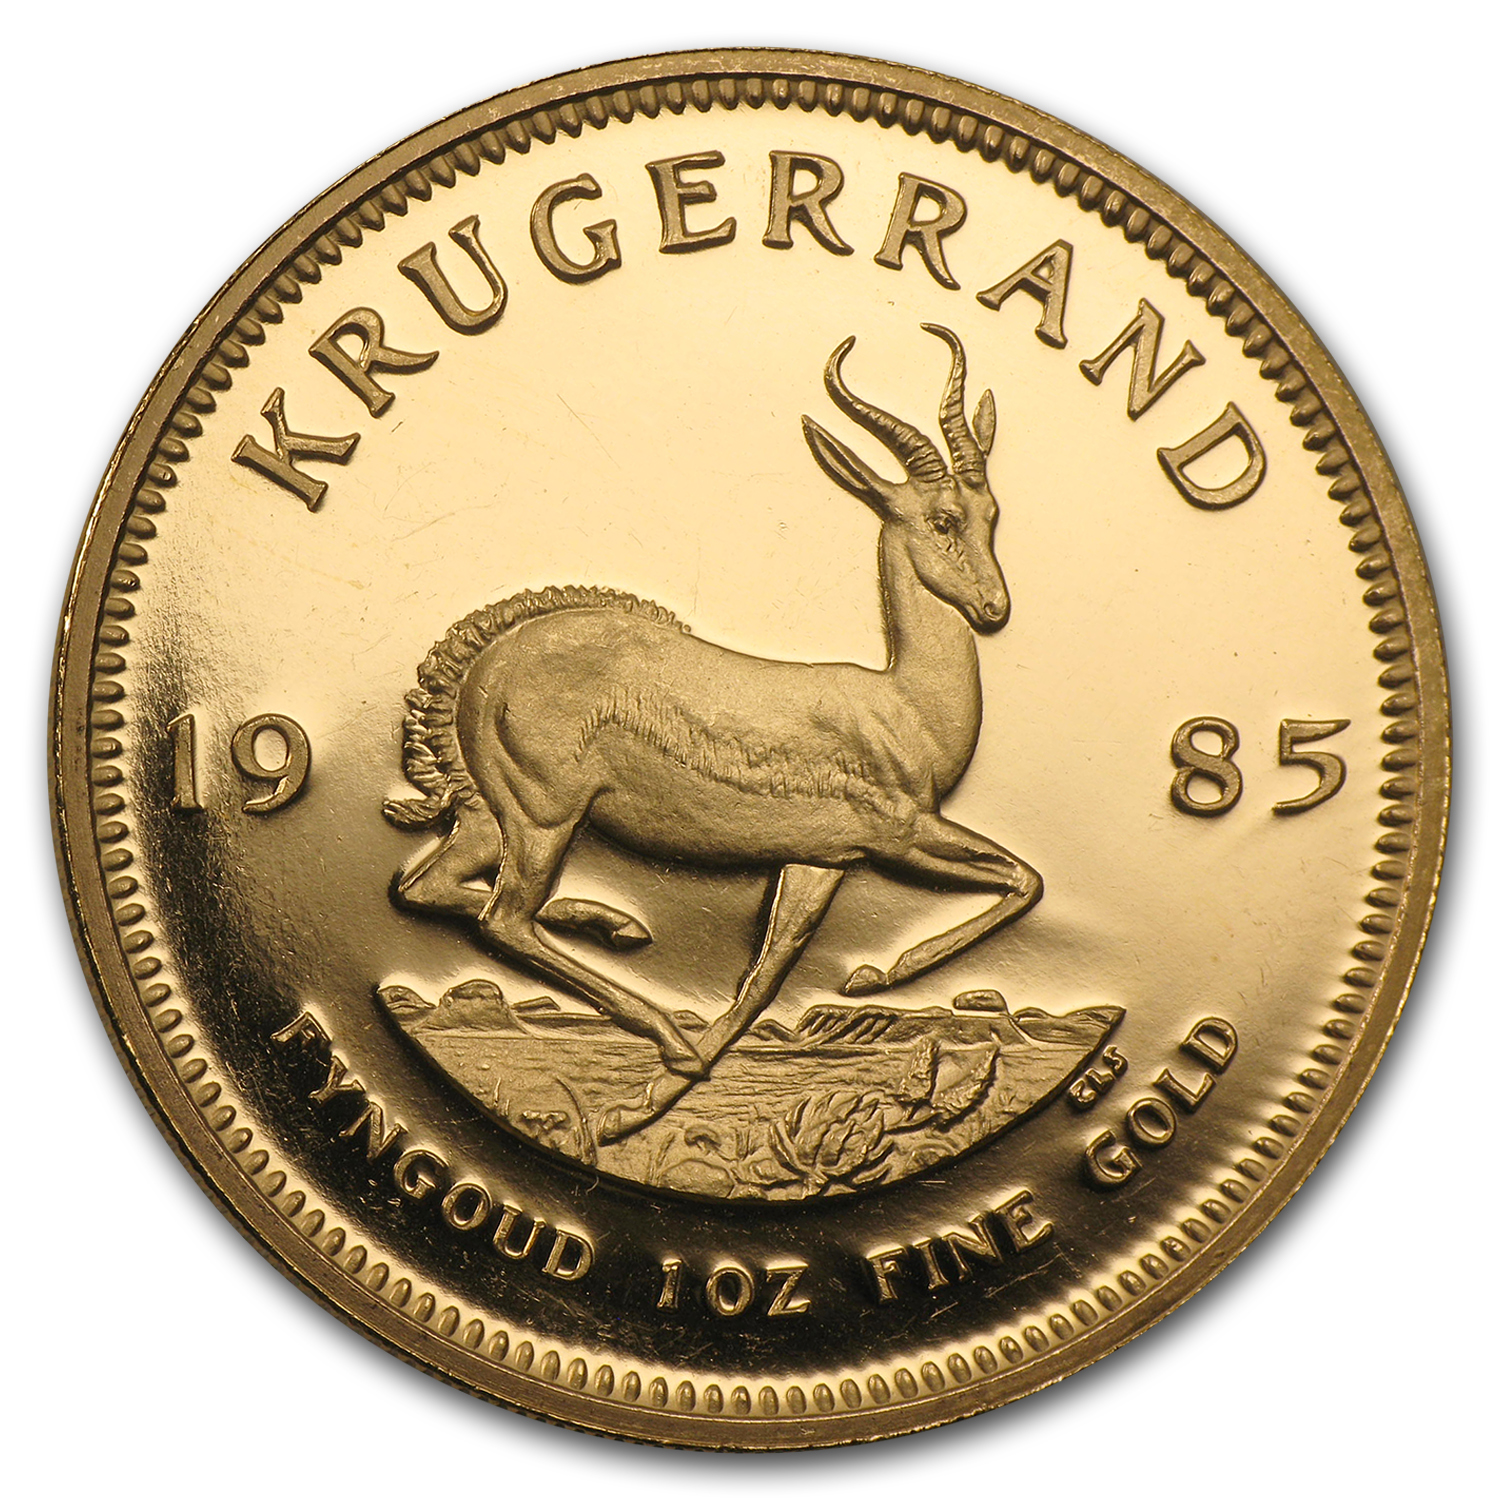 1985 1 oz Gold South African Krugerrand (Proof)